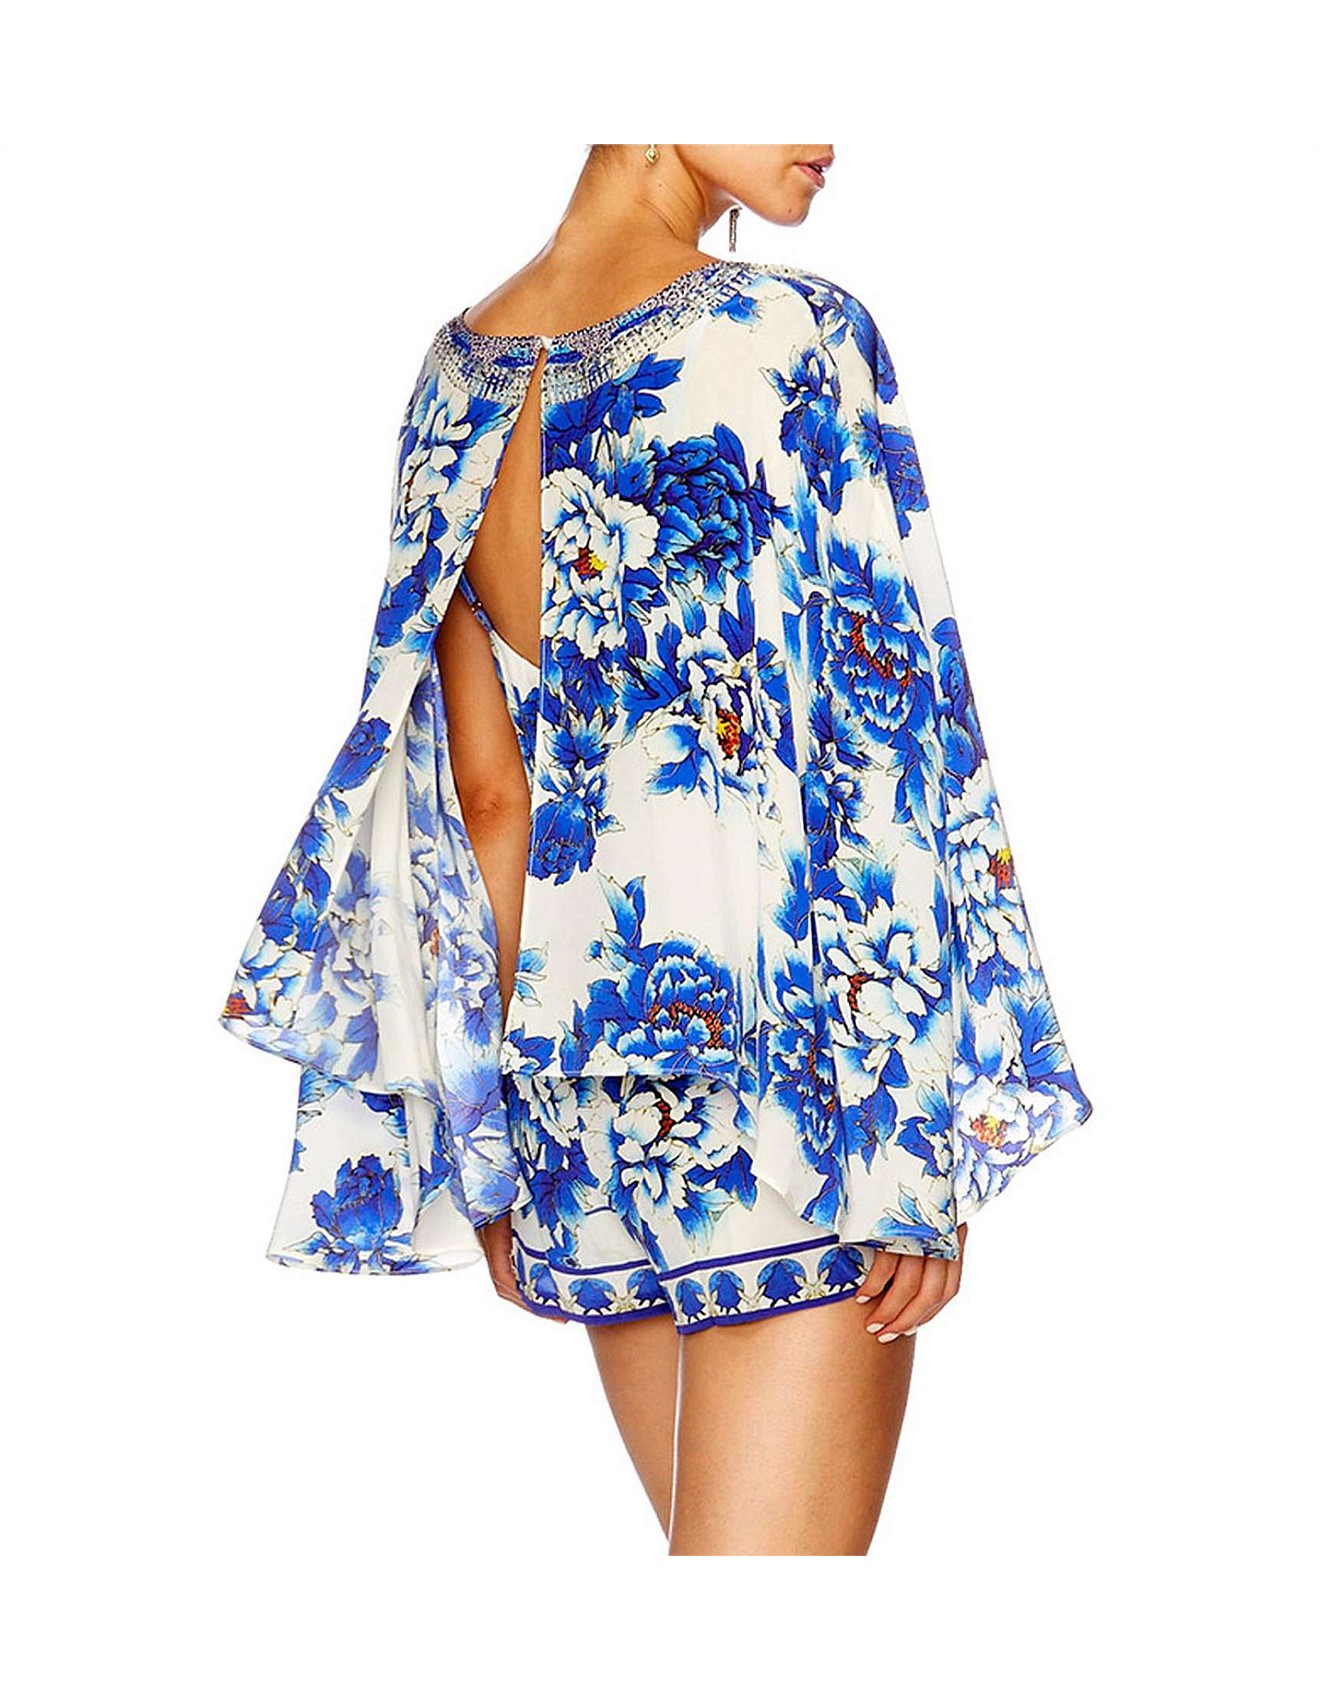 78f41a65a36 CAMILLA RING OF ROSES Cape Playsuit Special Offer. 1